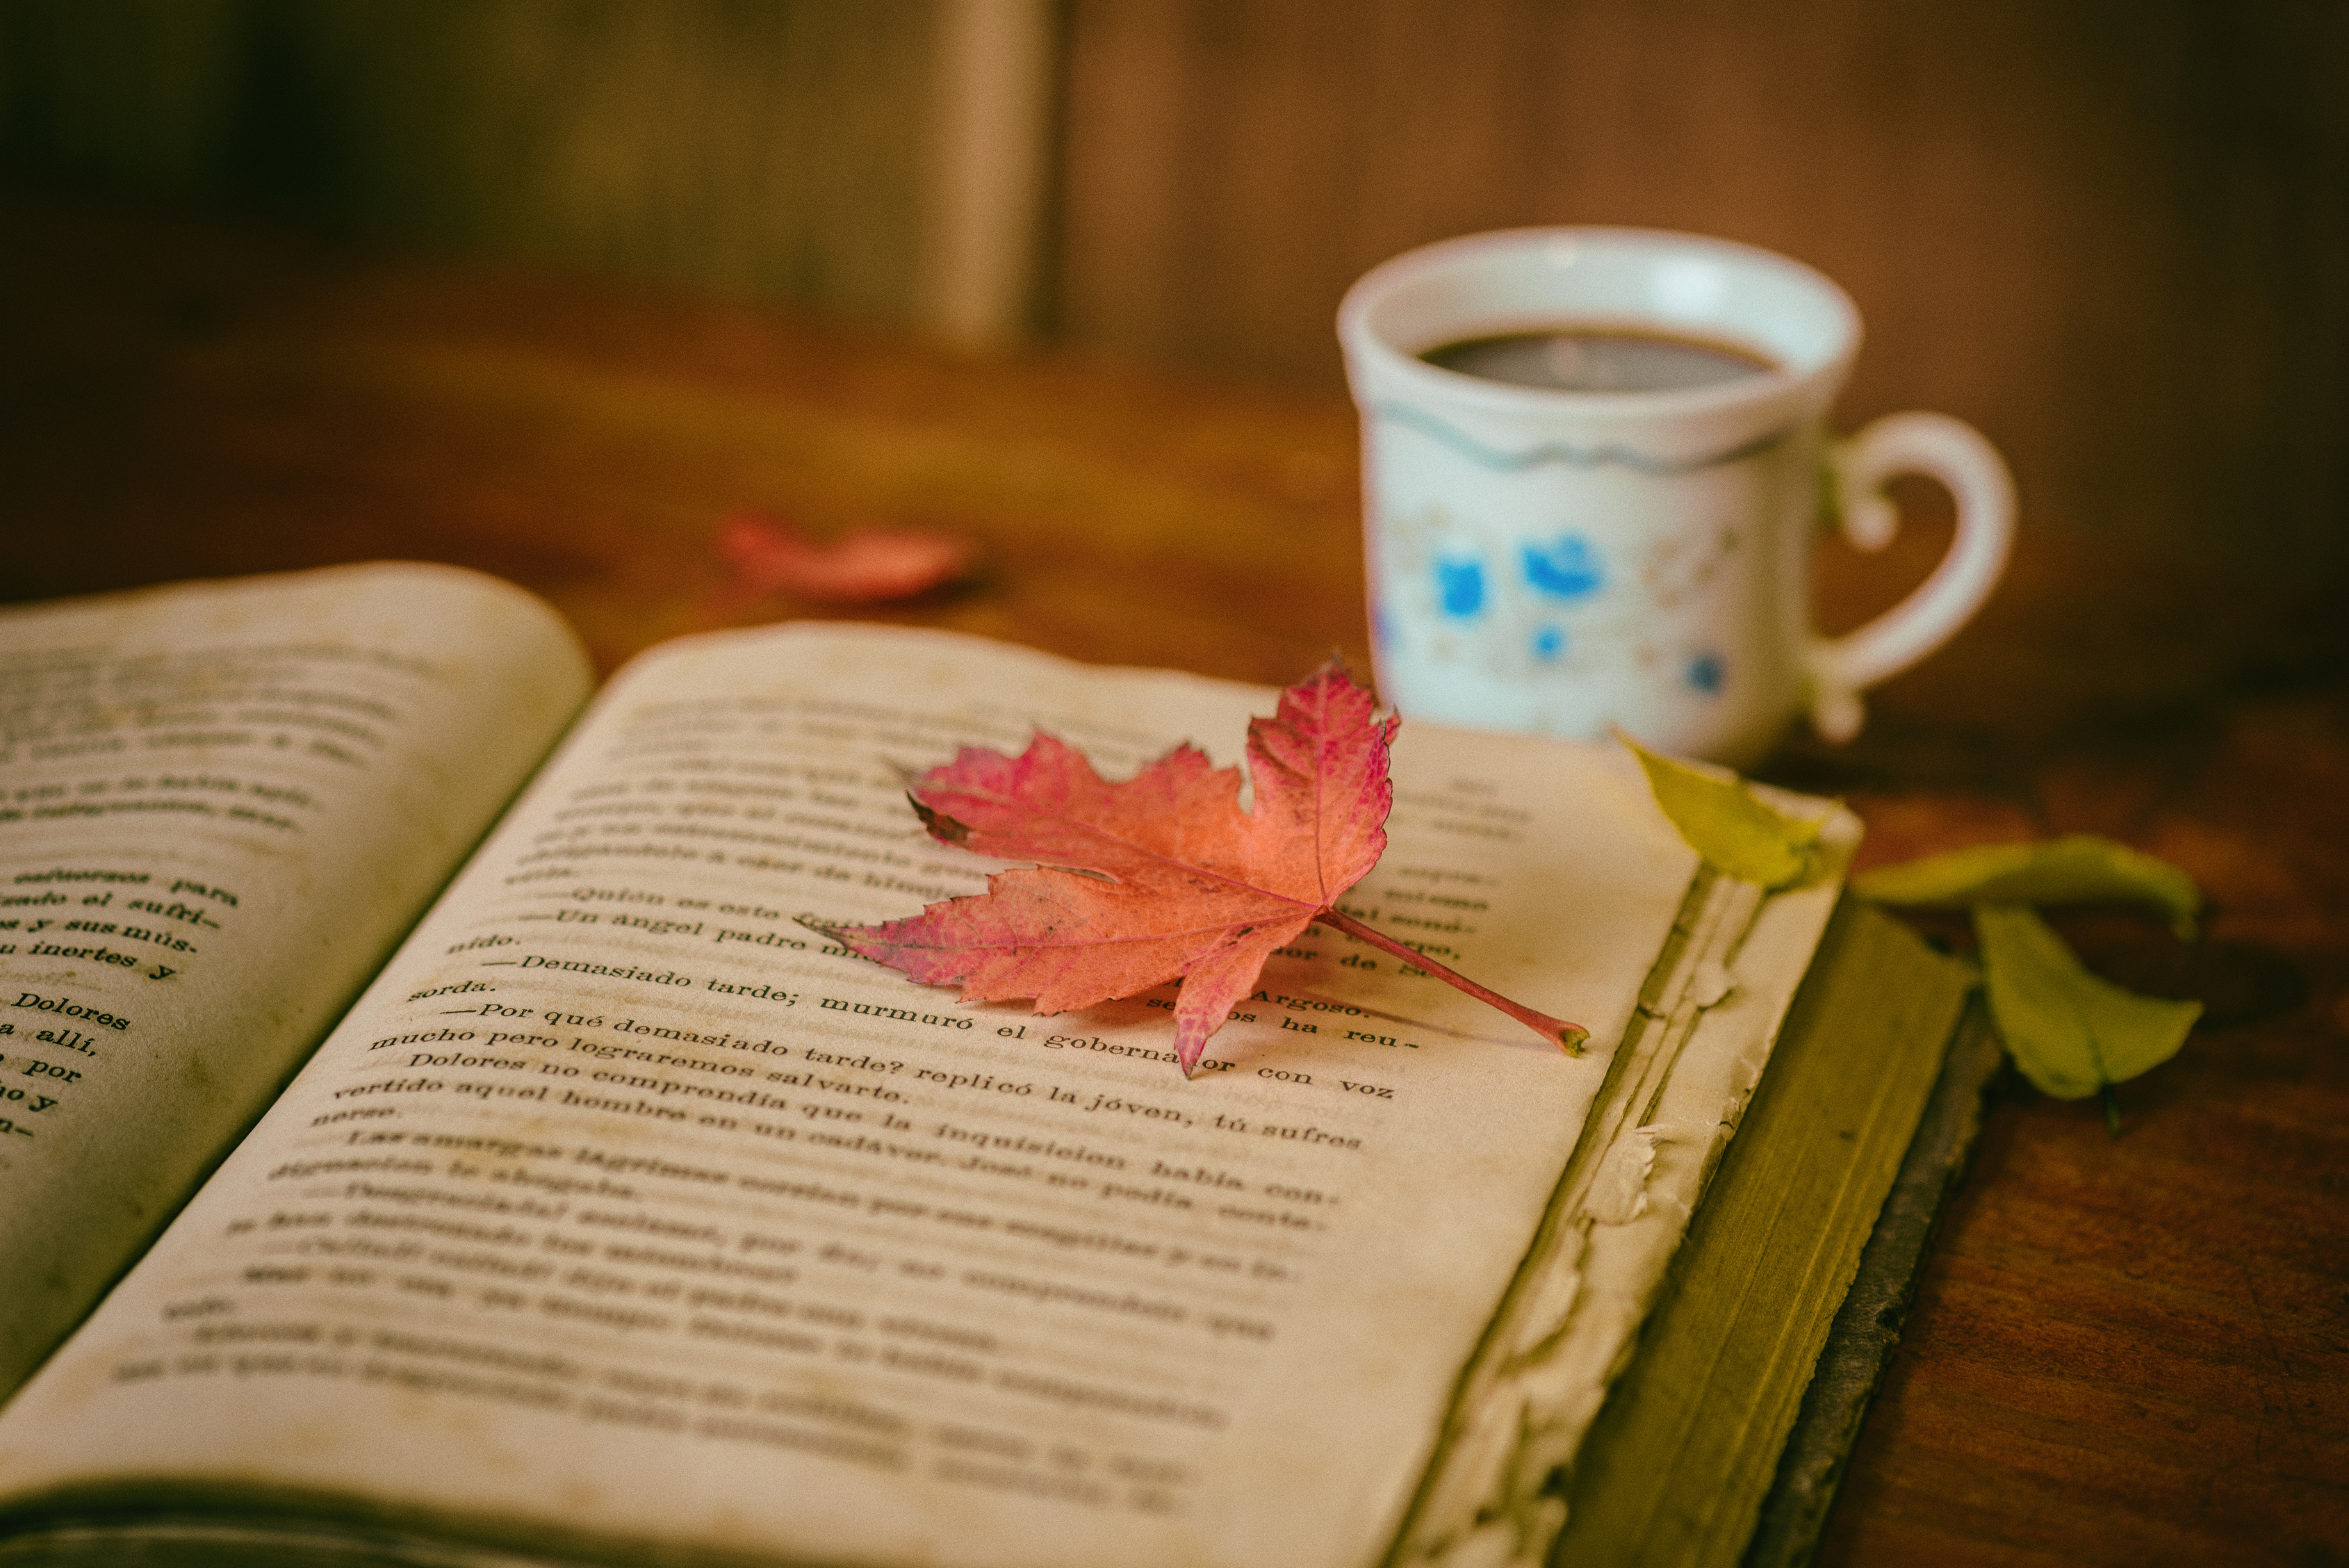 book-coffee-flower-reading-cup-color-670379-pxhere.com